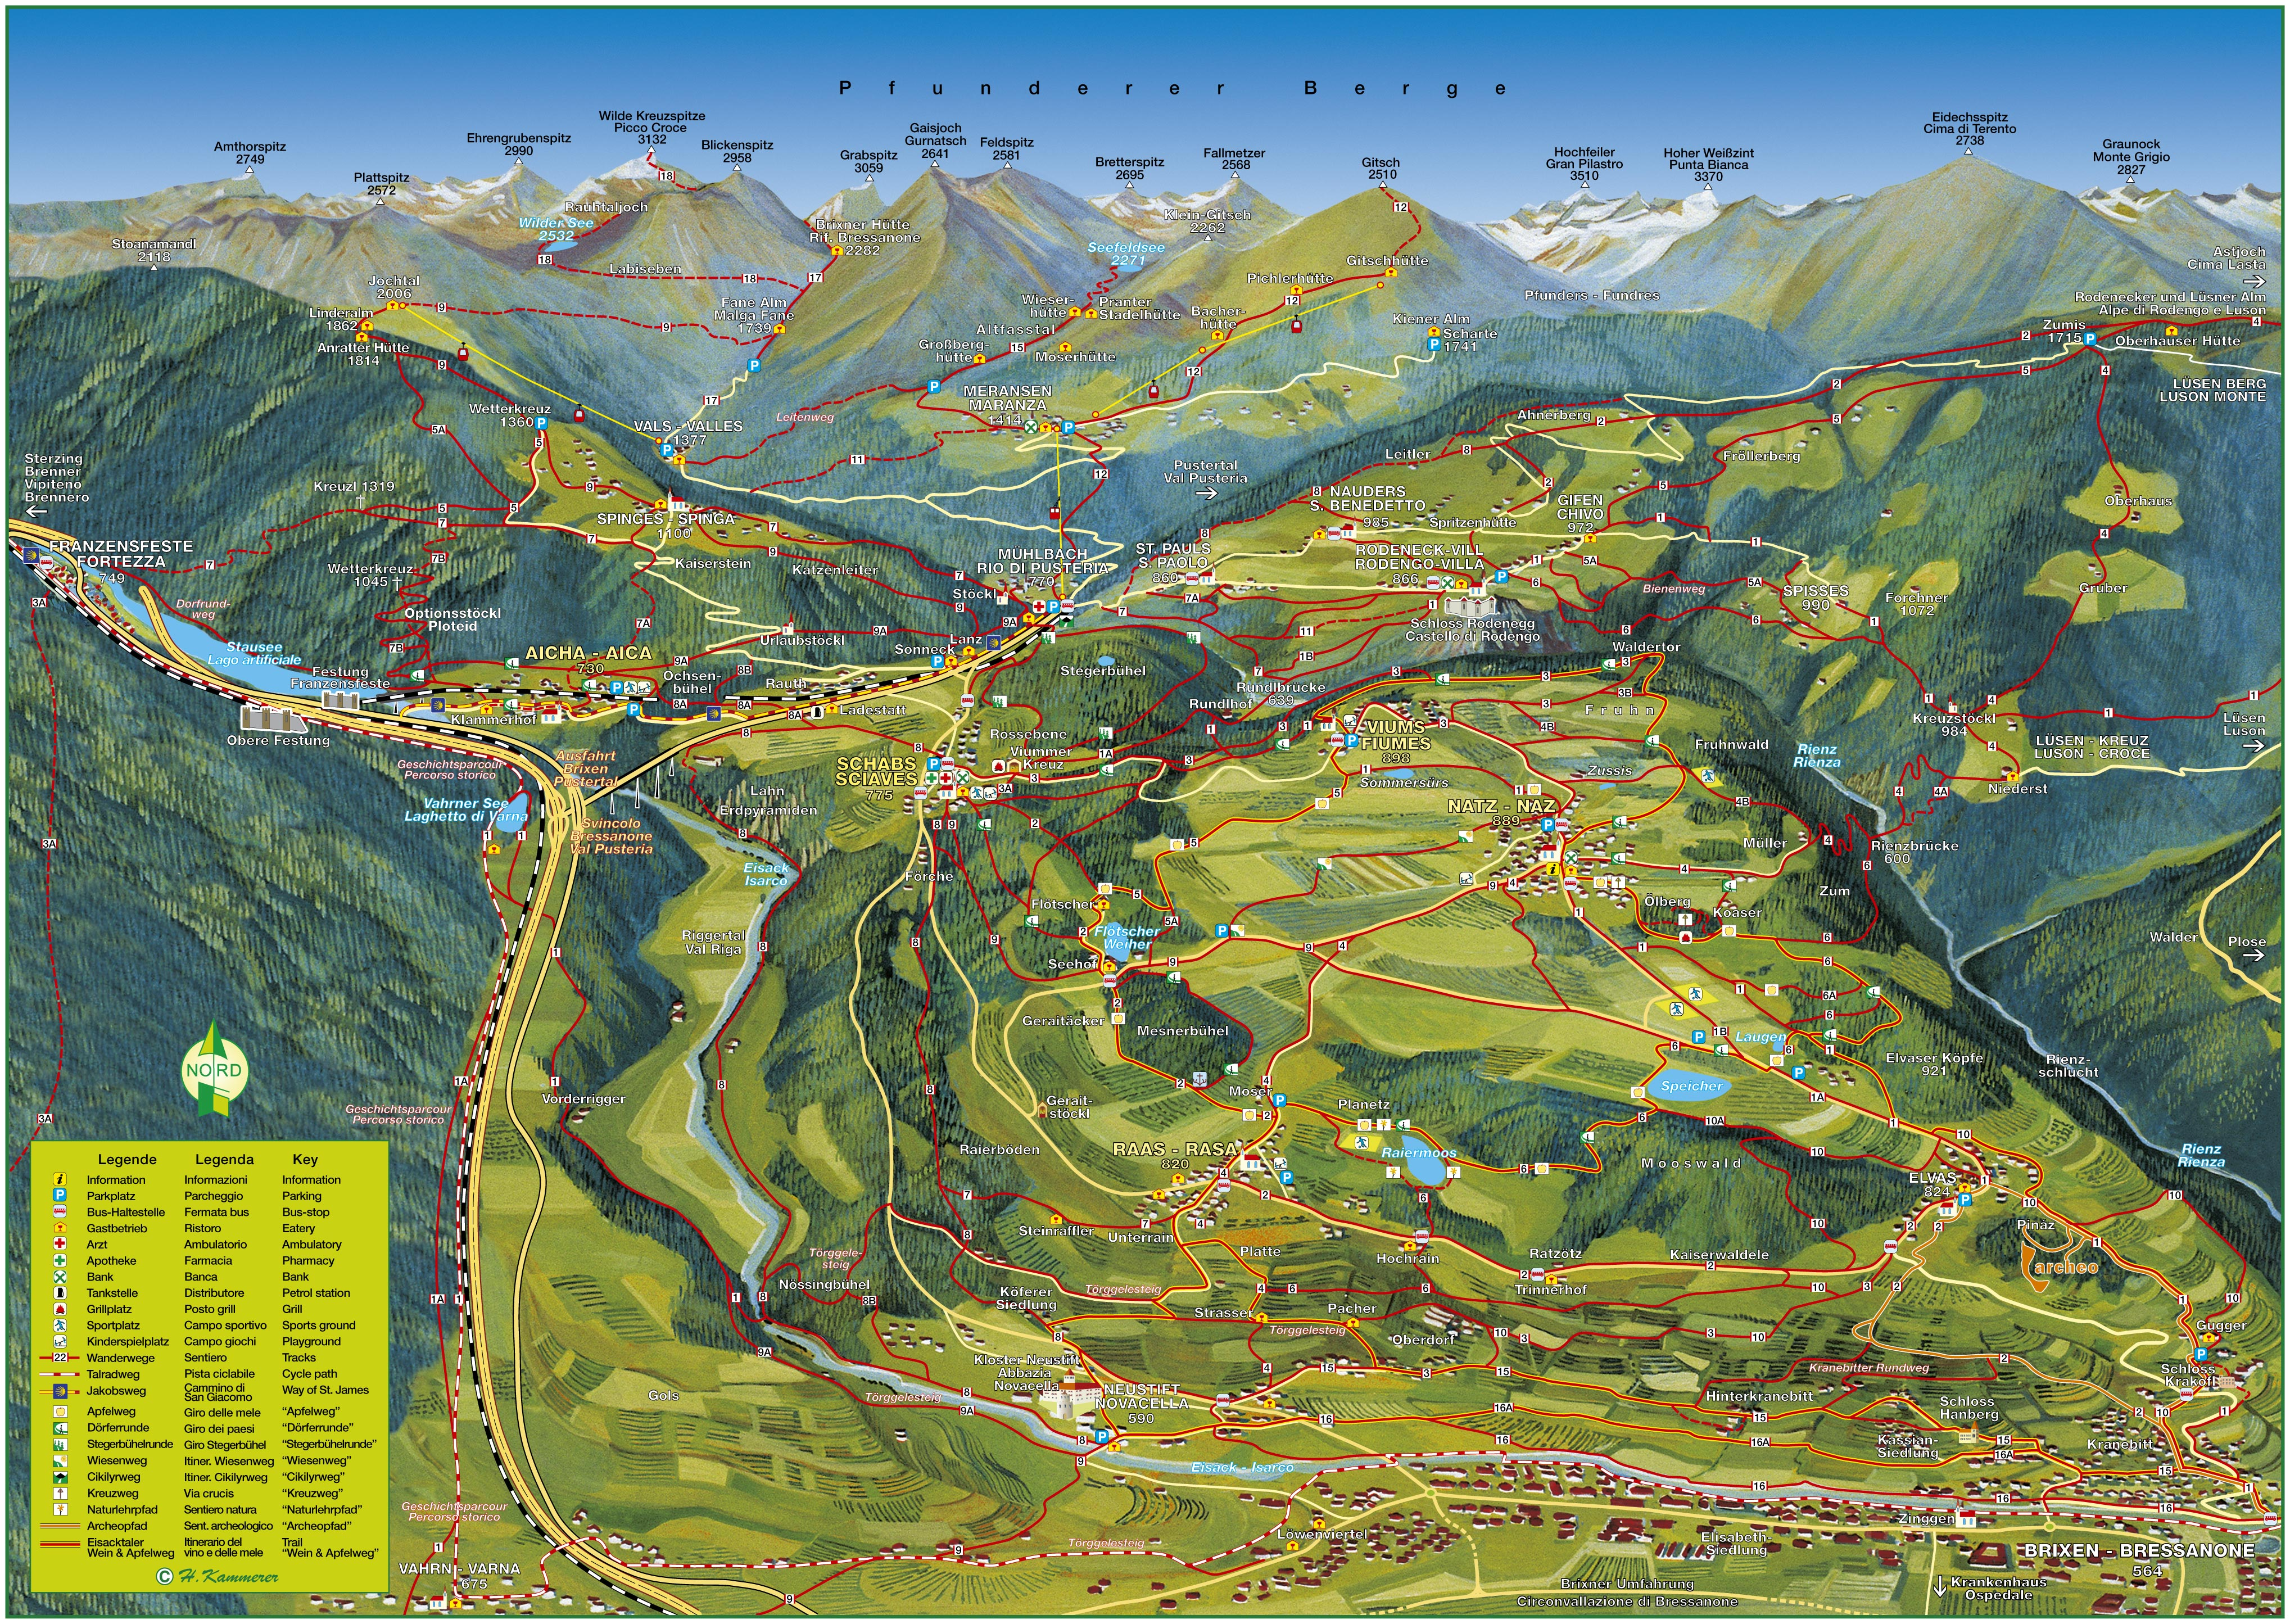 Hiking and Walking - Natz-Schabs in South Tyrol